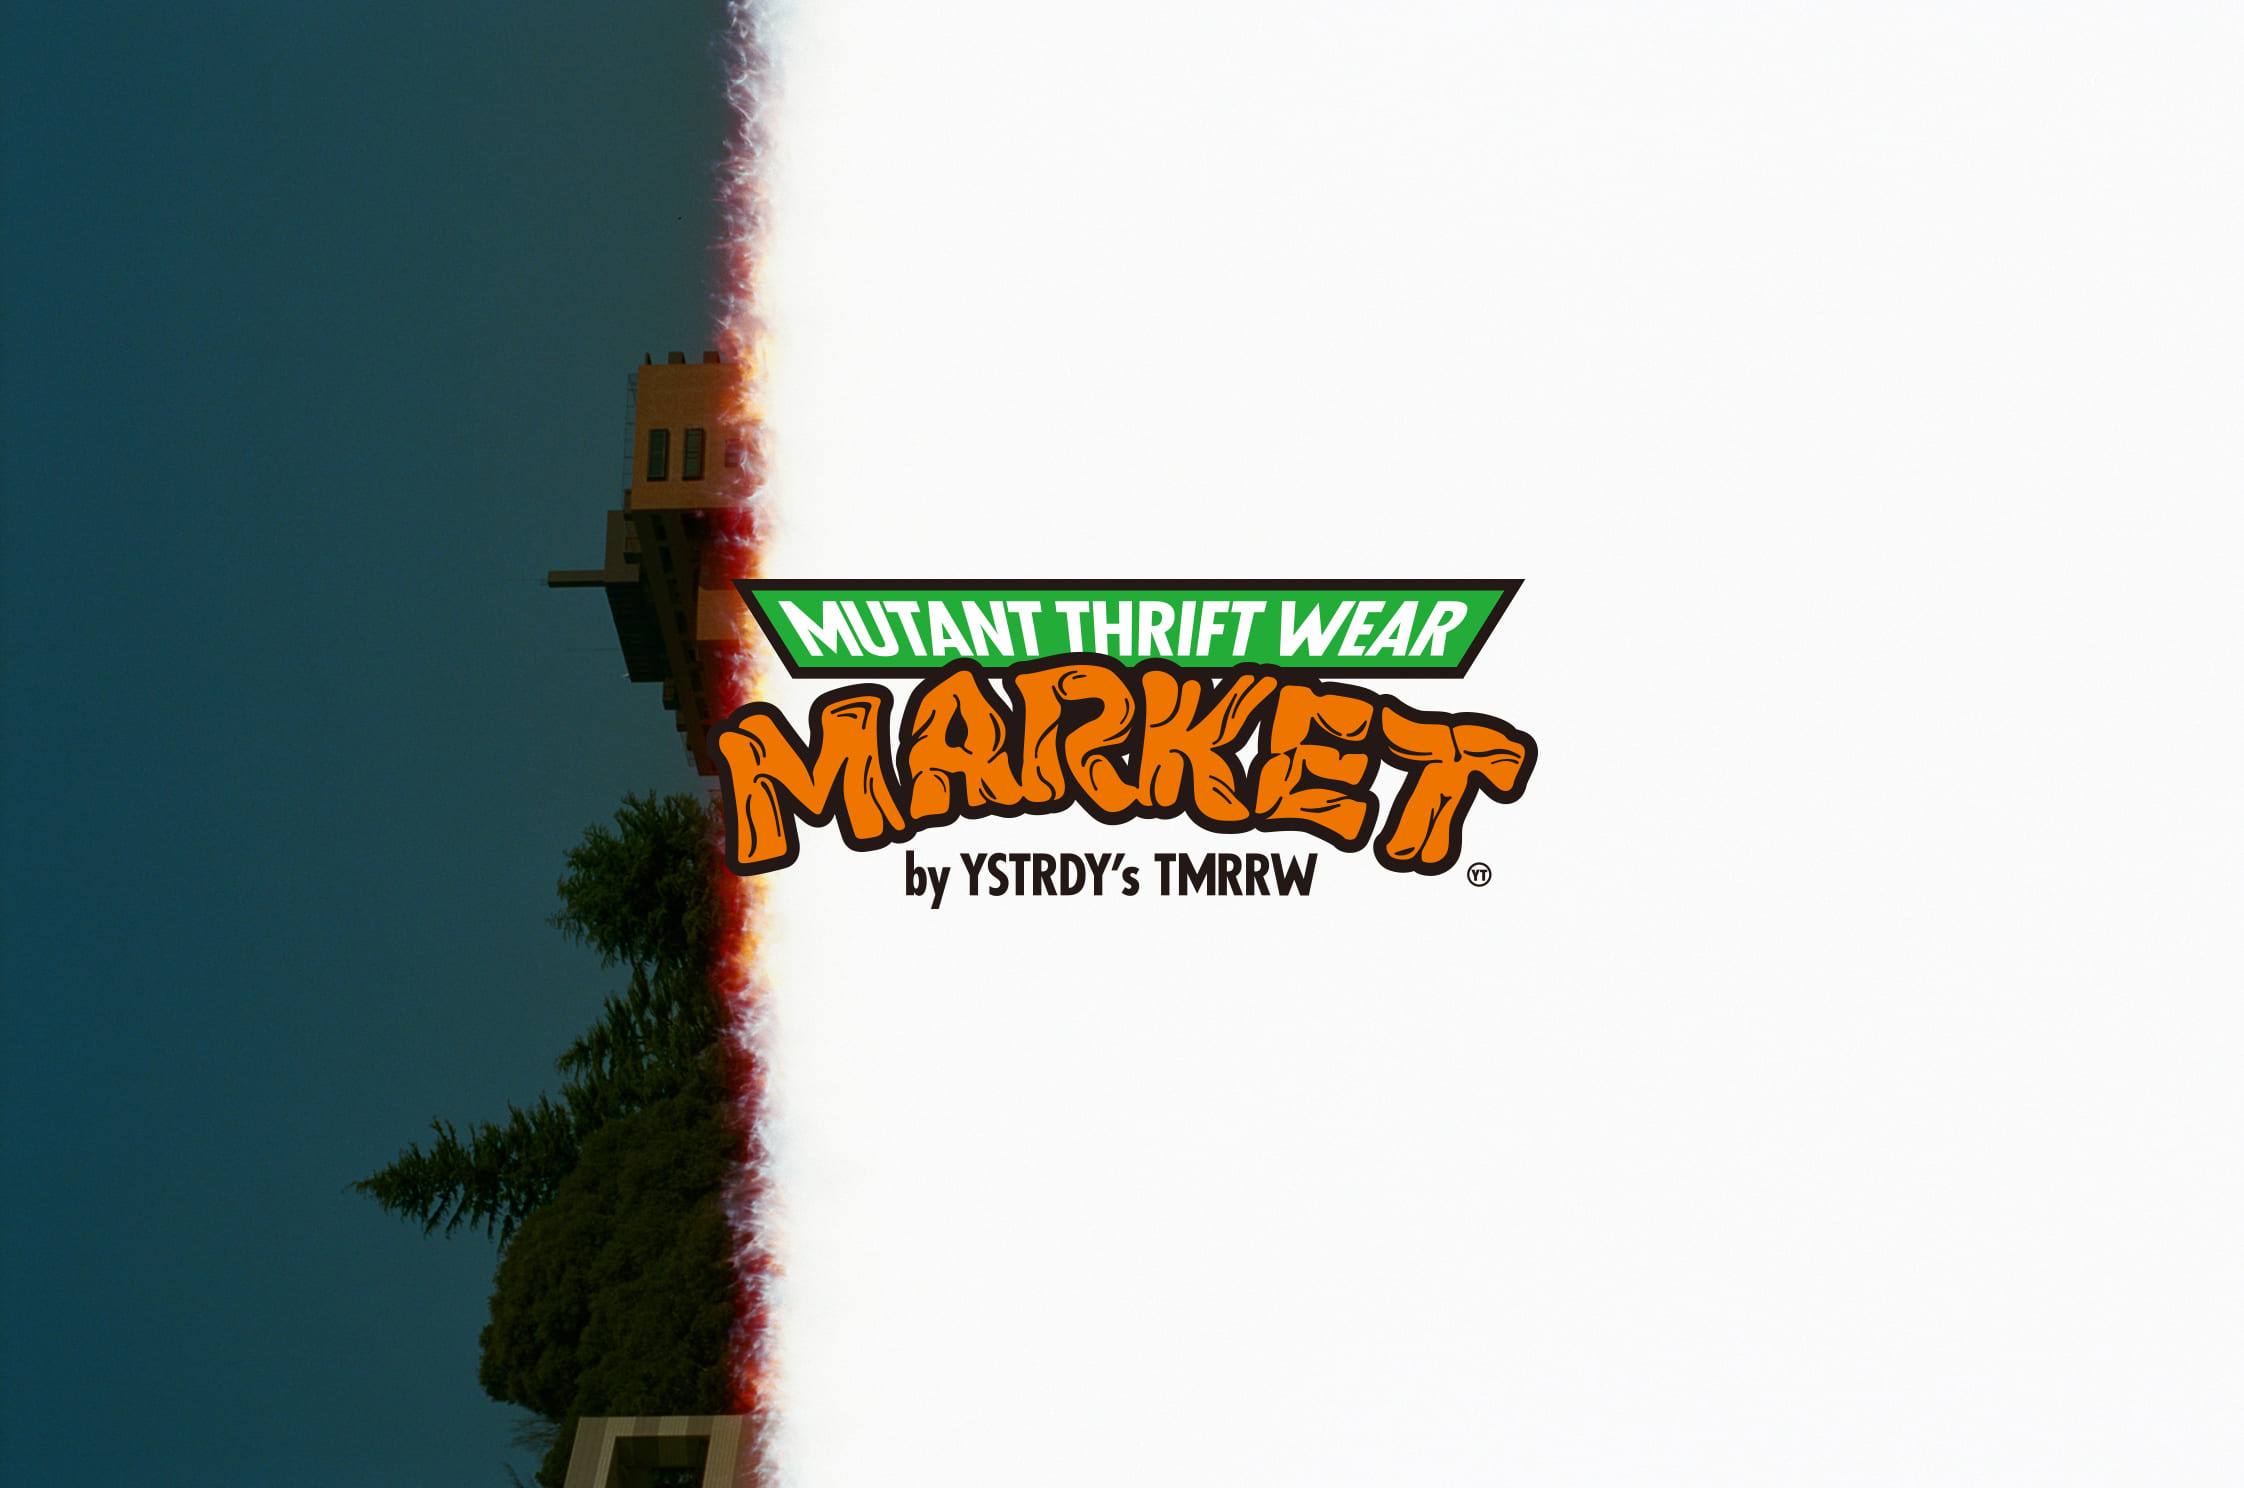 MUTANT THRIFT WEAR MARKET by YSTRDY's TMRRW_00_top_ヨã'³.jpg